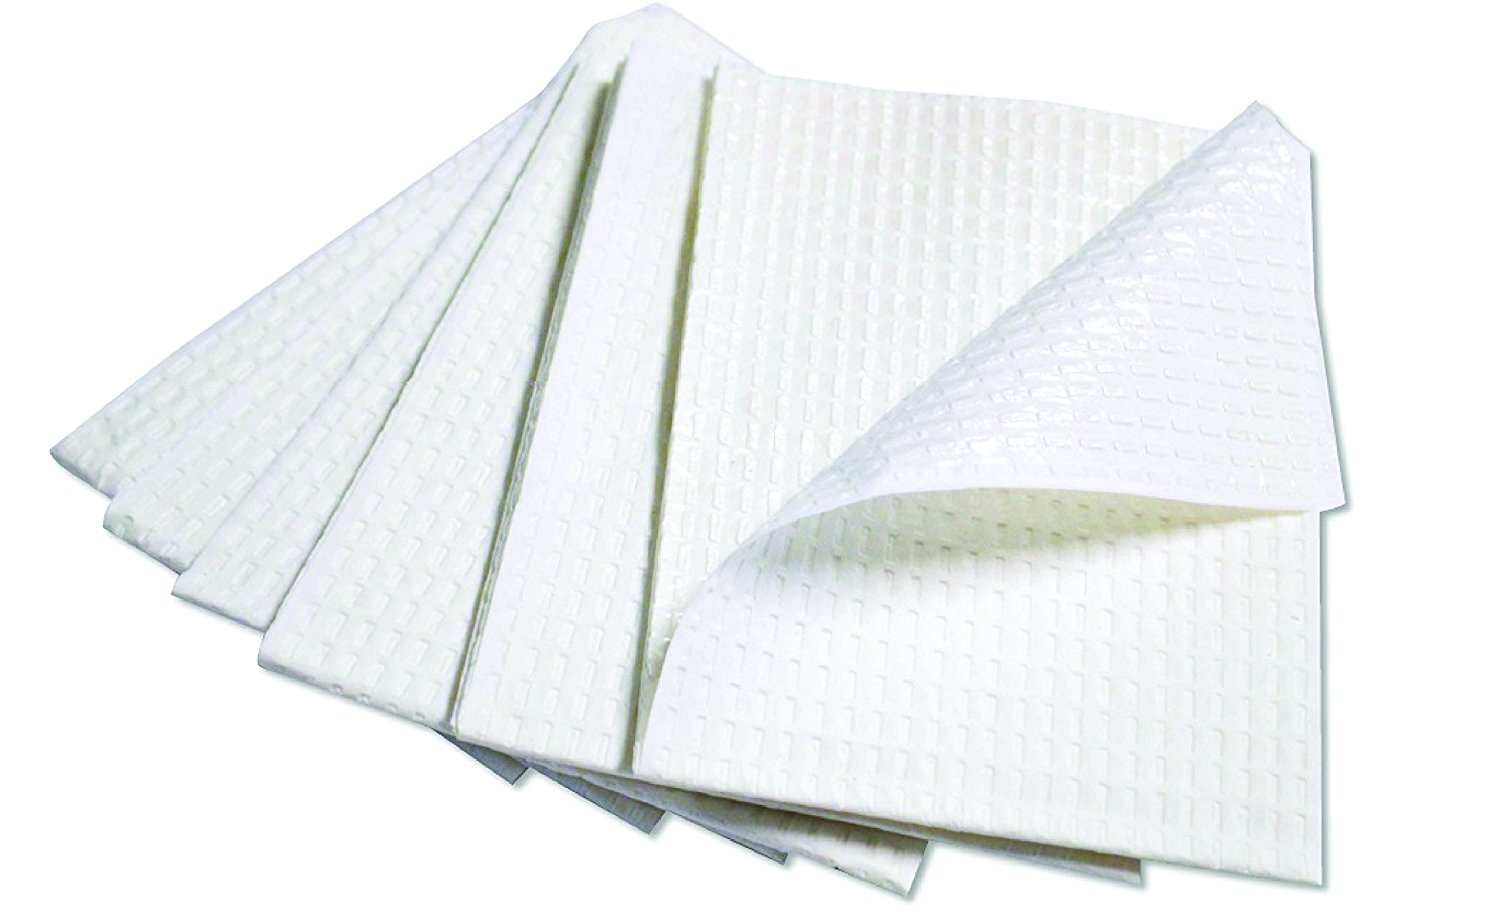 17 Quot X 18 Quot White Changing Table Liners Waterproof 500